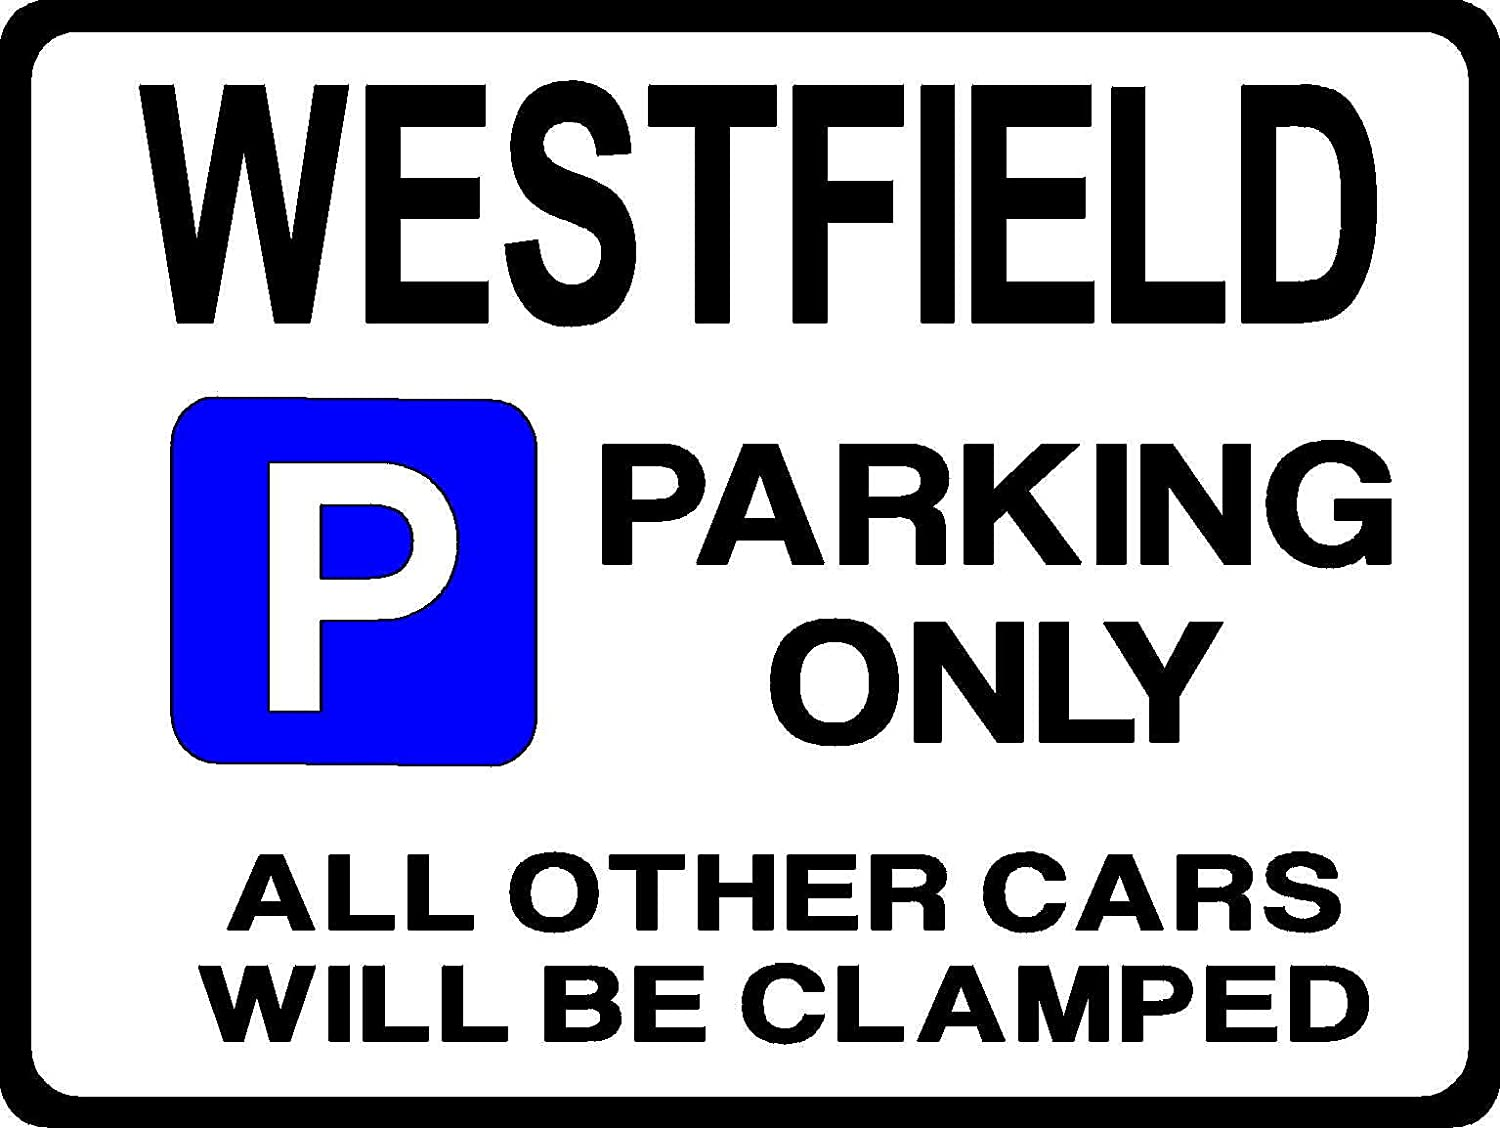 Made in UK WESTFIELD PARKING SIGN by Custom-Large Size-270mm x 205mm All fixing included